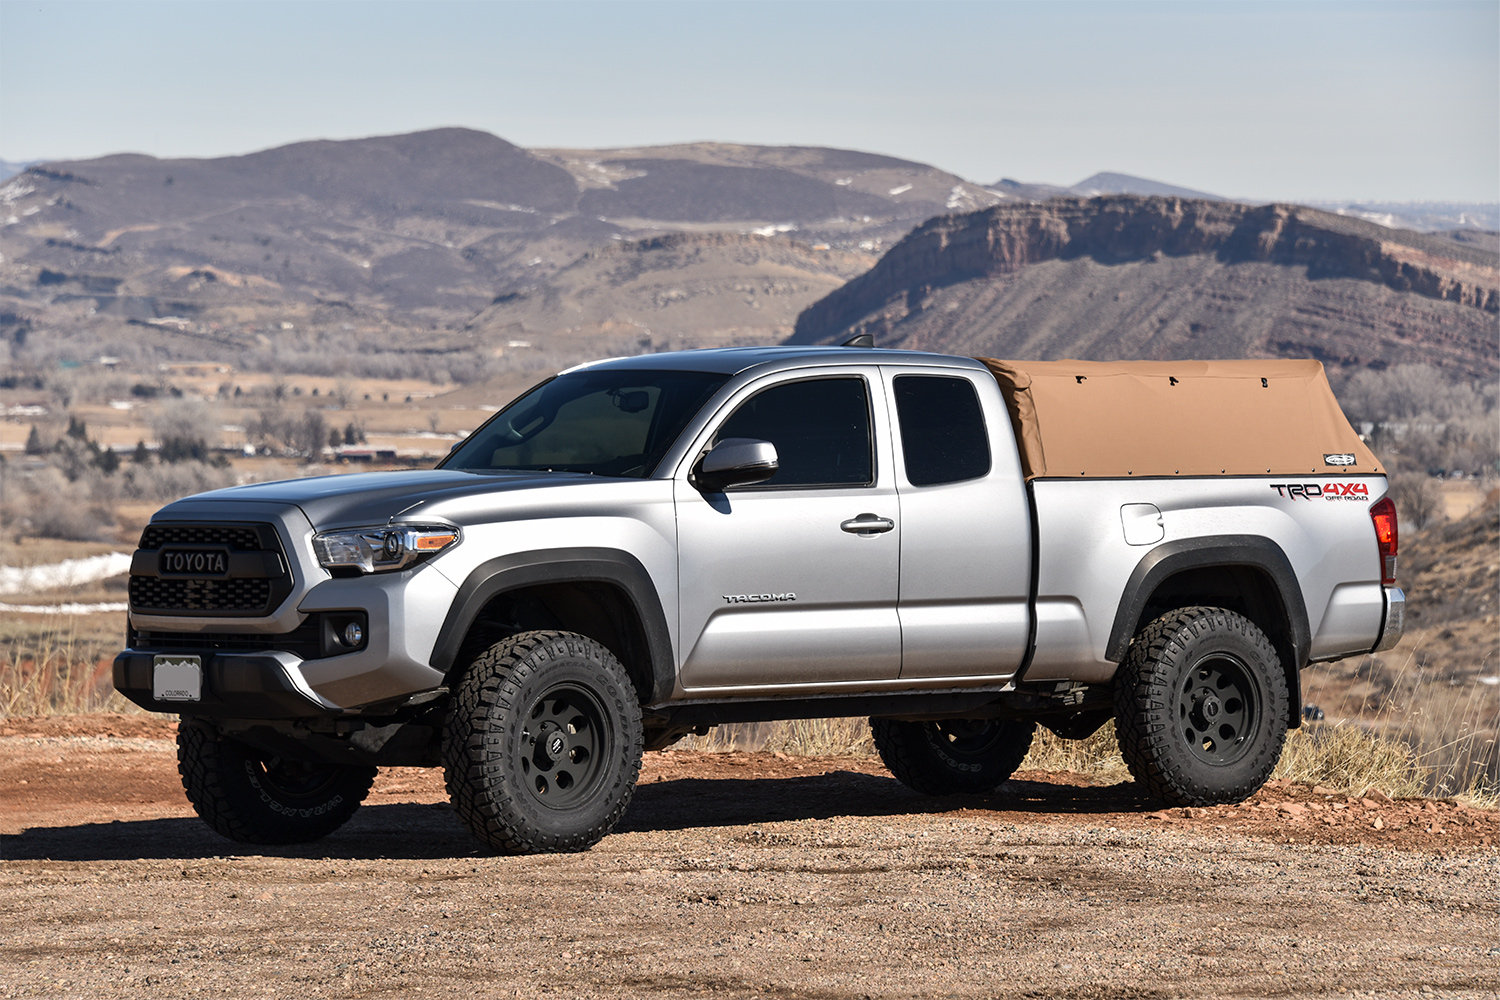 3rd Gen Toyota Tacoma Overlander Build Photography Truck 2019